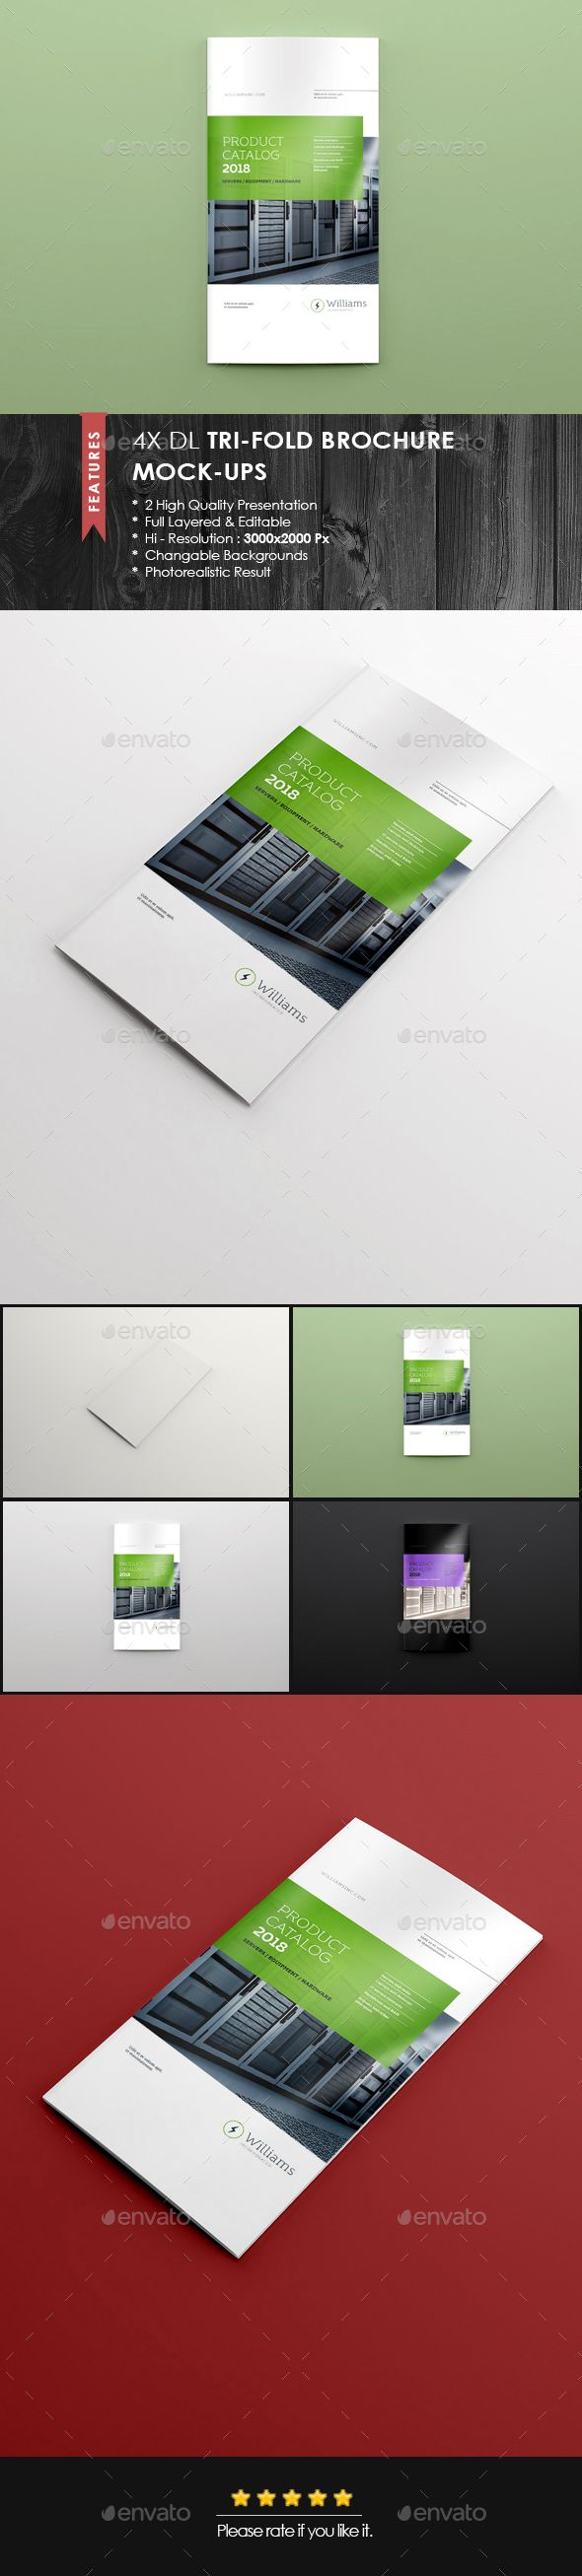 Xdl Double Gate Fold Brochure MockUp  Brochures Mockup And